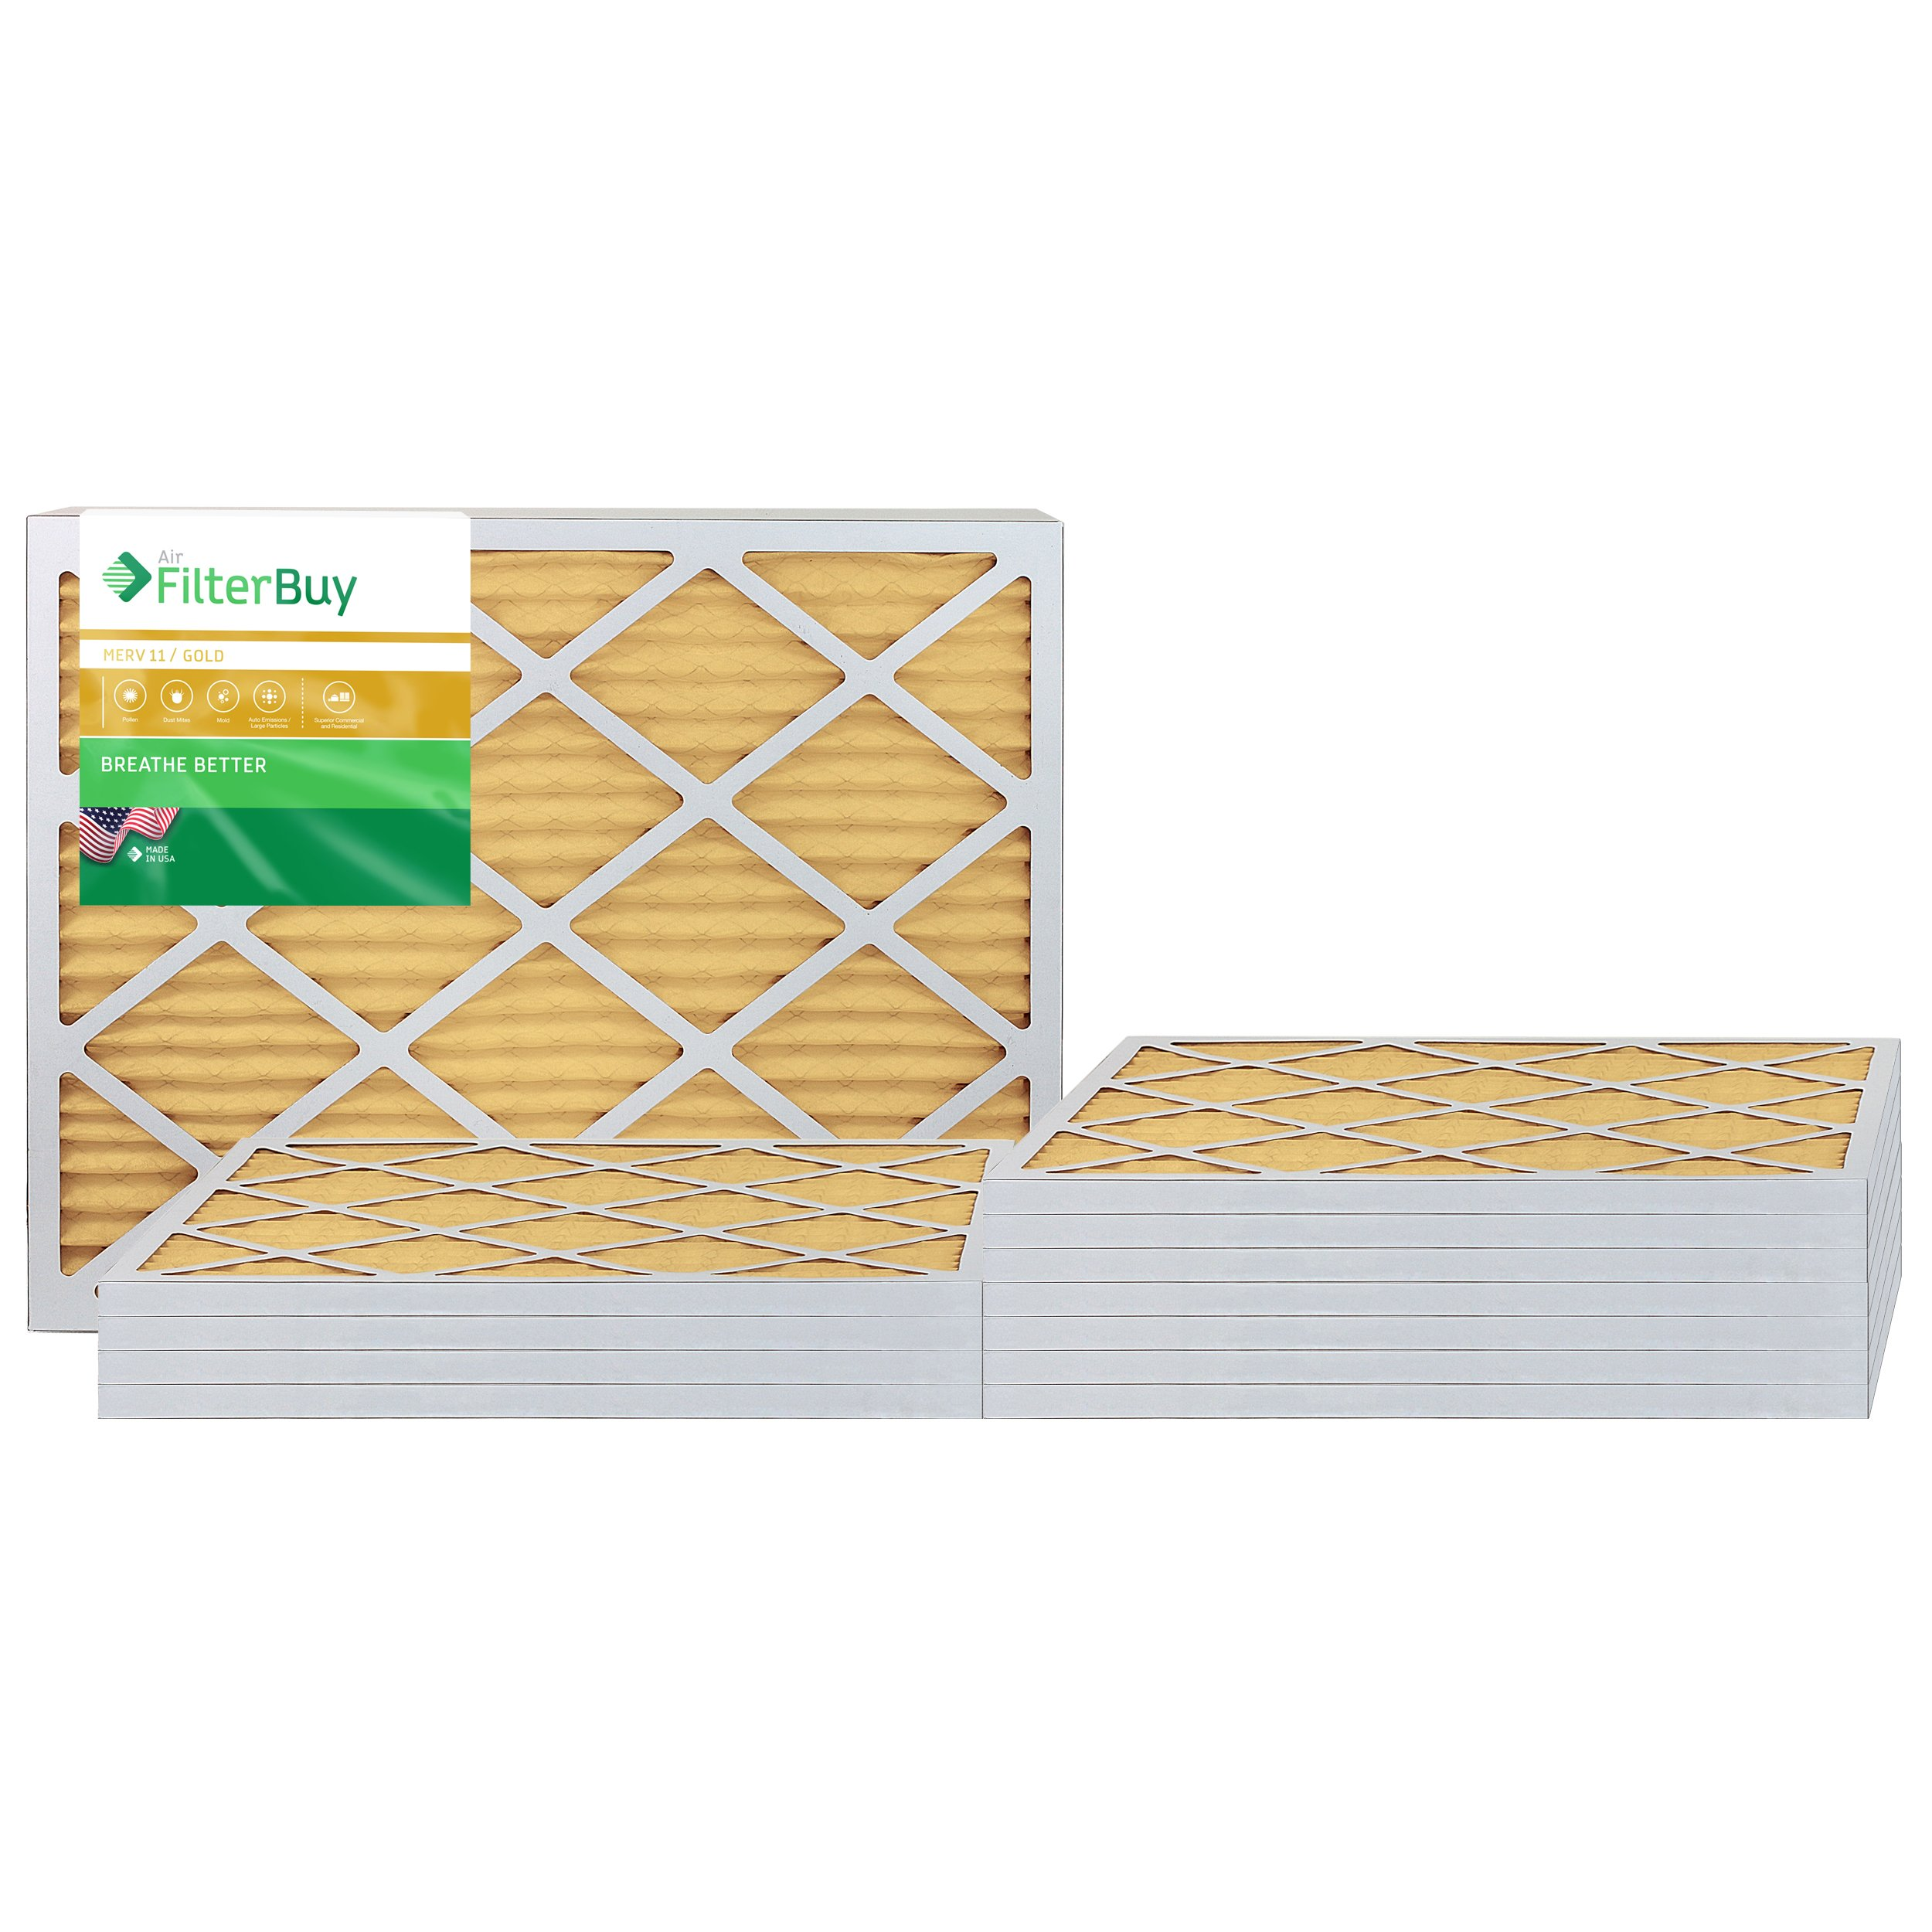 AFB Gold MERV 11 20x25x1 Pleated AC Furnace Air Filter. Pack of 12 Filters. 100% produced in the USA.